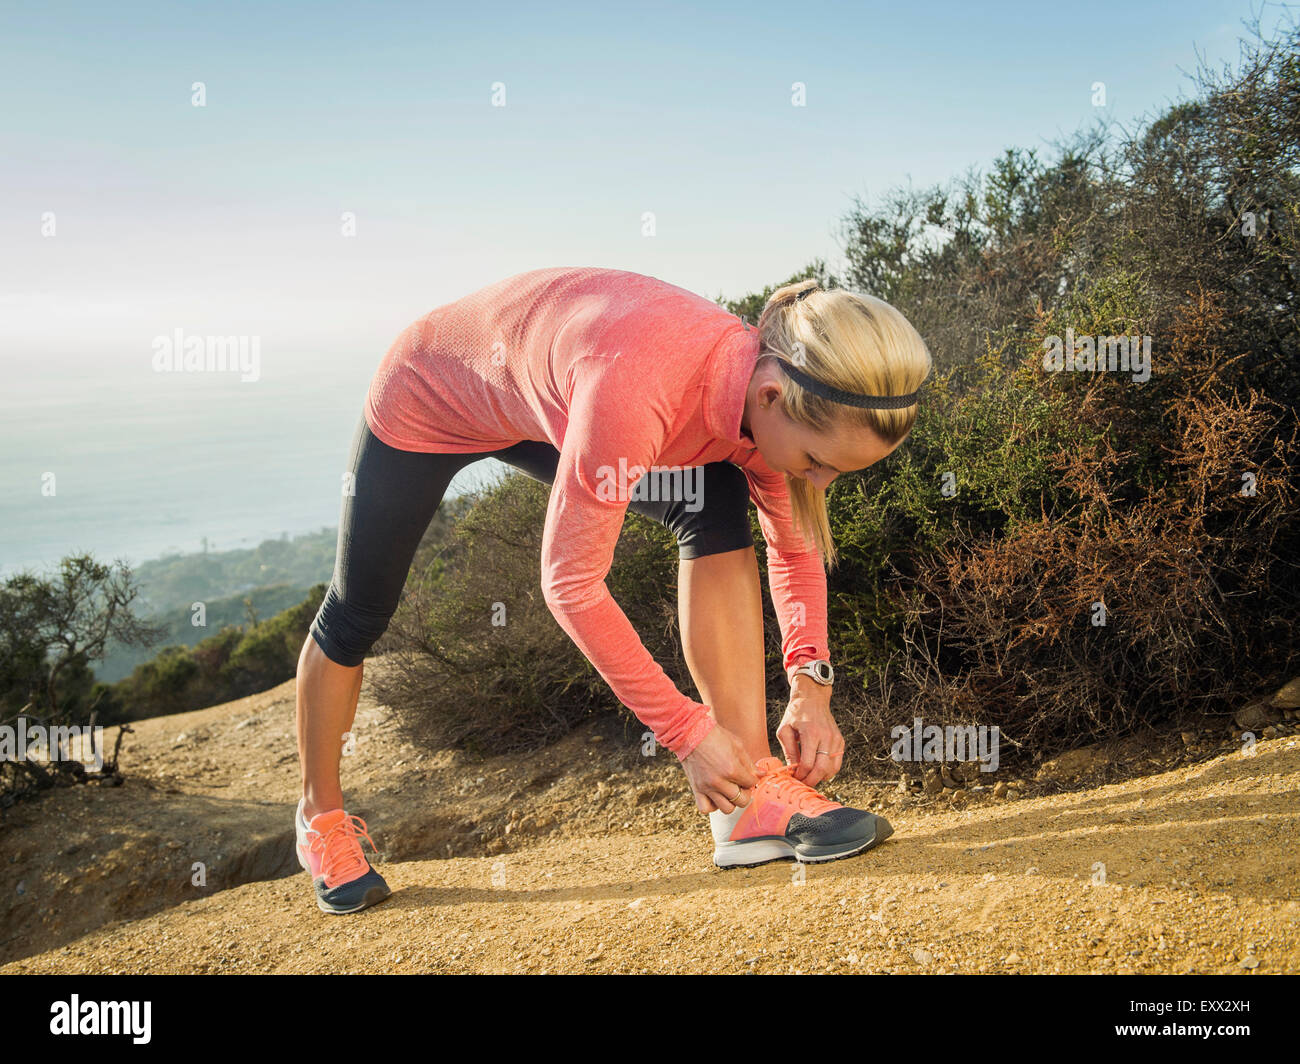 Woman tying shoe - Stock Image